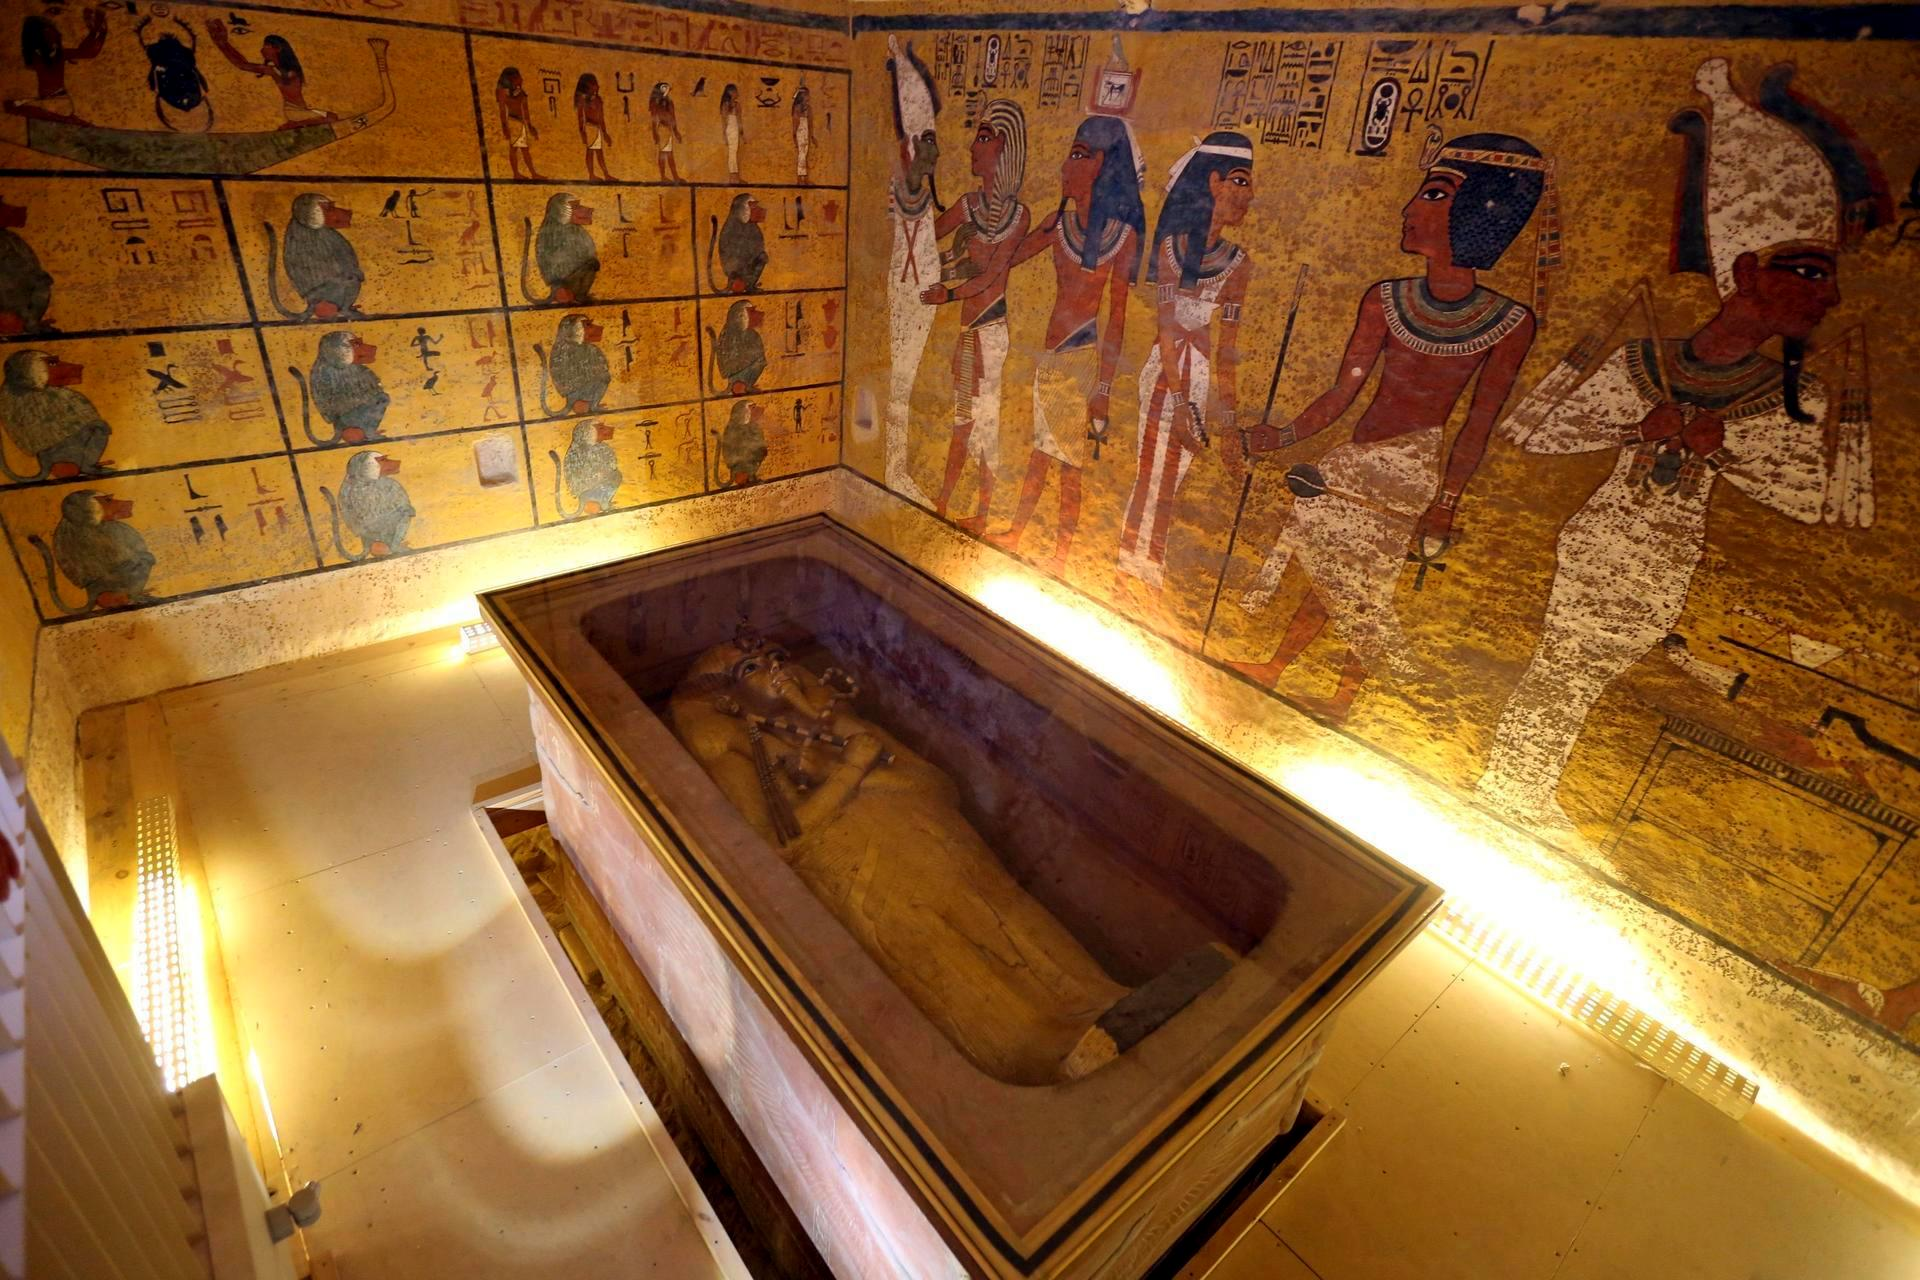 the life and tomb of king tutankhamun King tut is chiefly known for his intact tomb, discovered in egypt's valley of the kings in 1922 since then, his remains have held millions in awe over the mystery of his life and death king.